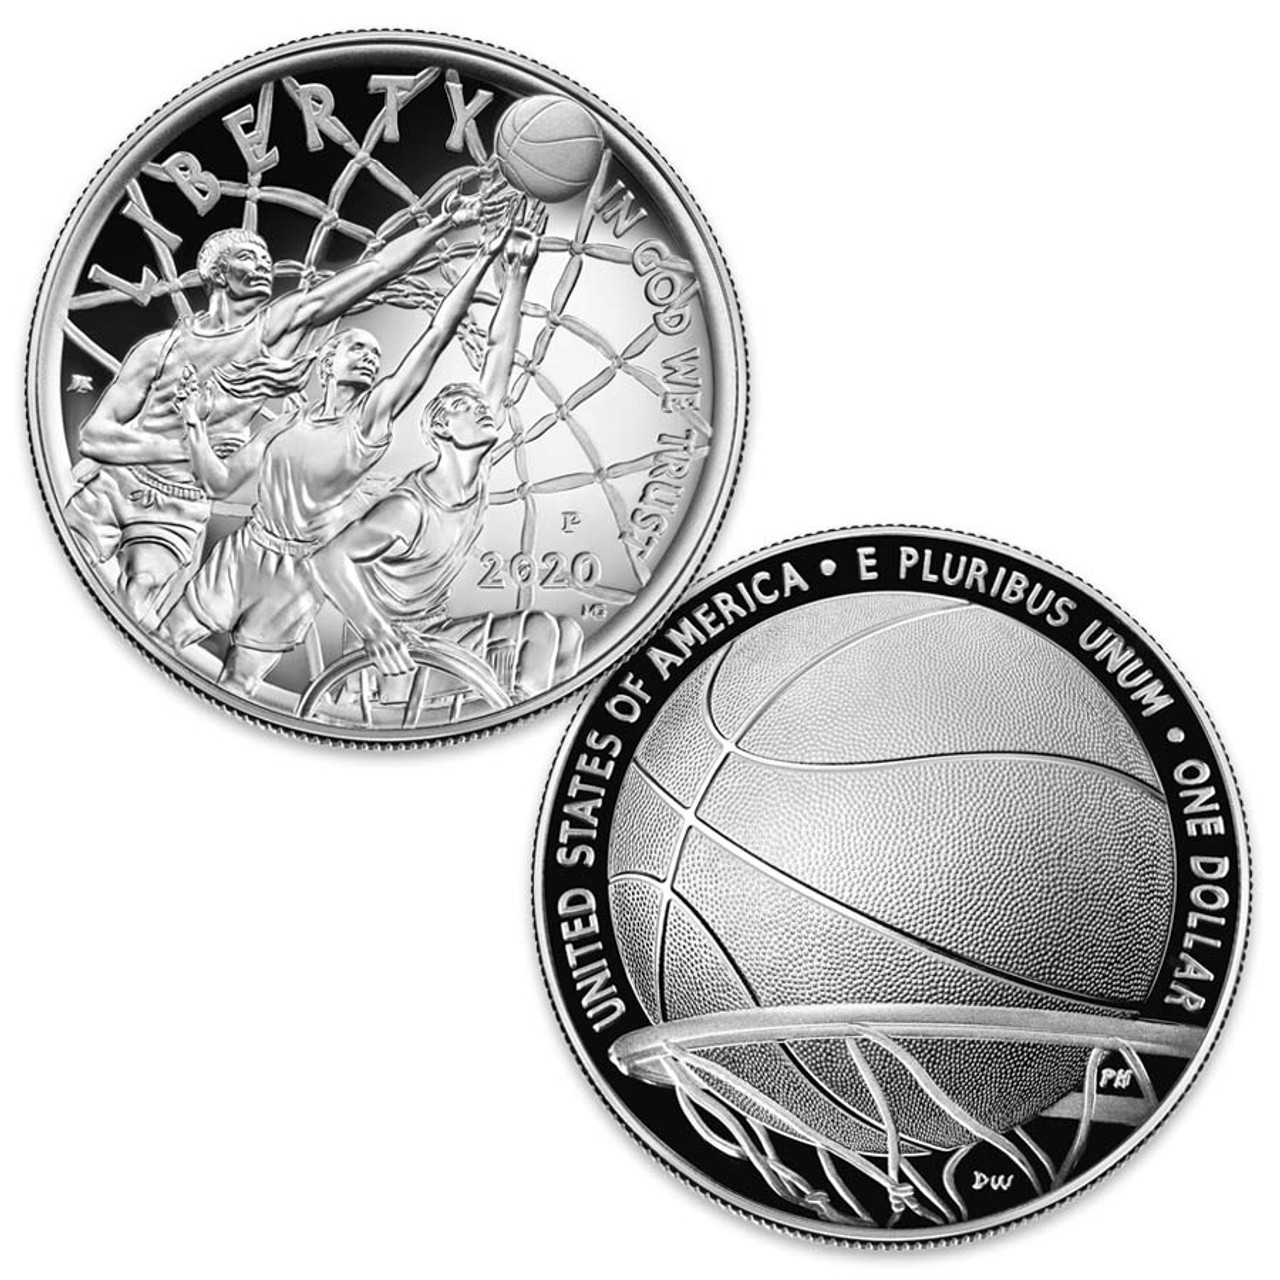 2020 Basketball Hall of Fame Curved Silver Dollar Proof